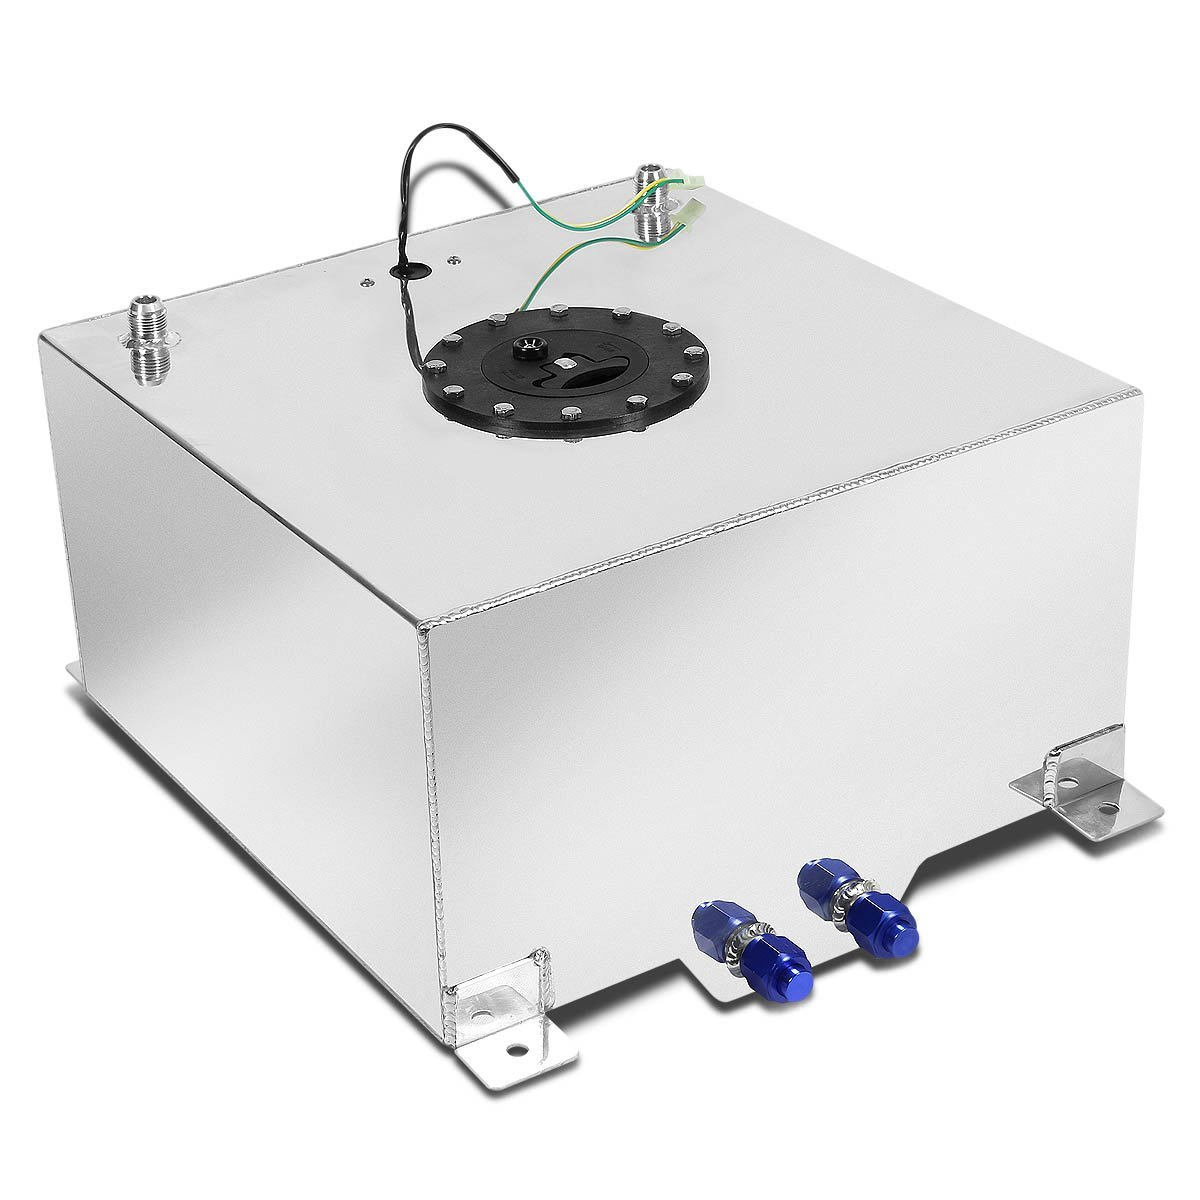 5 Gallon Aluminum Fuel Cell Gas Tank With Level Sender